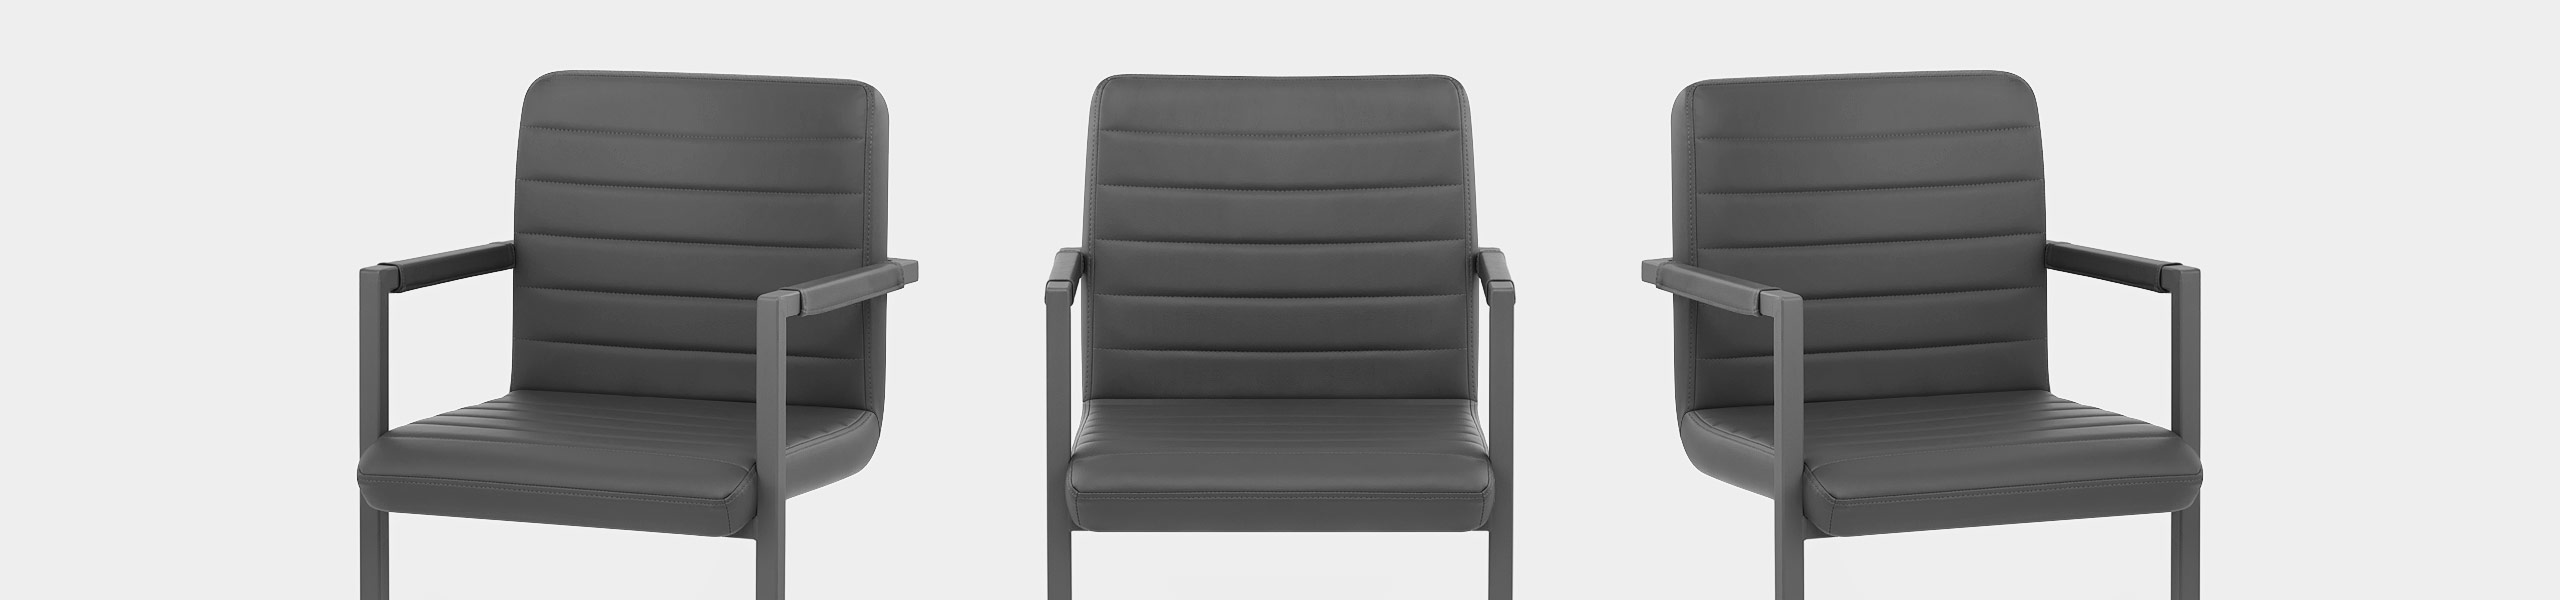 Omega Dining Chair Grey Video Banner